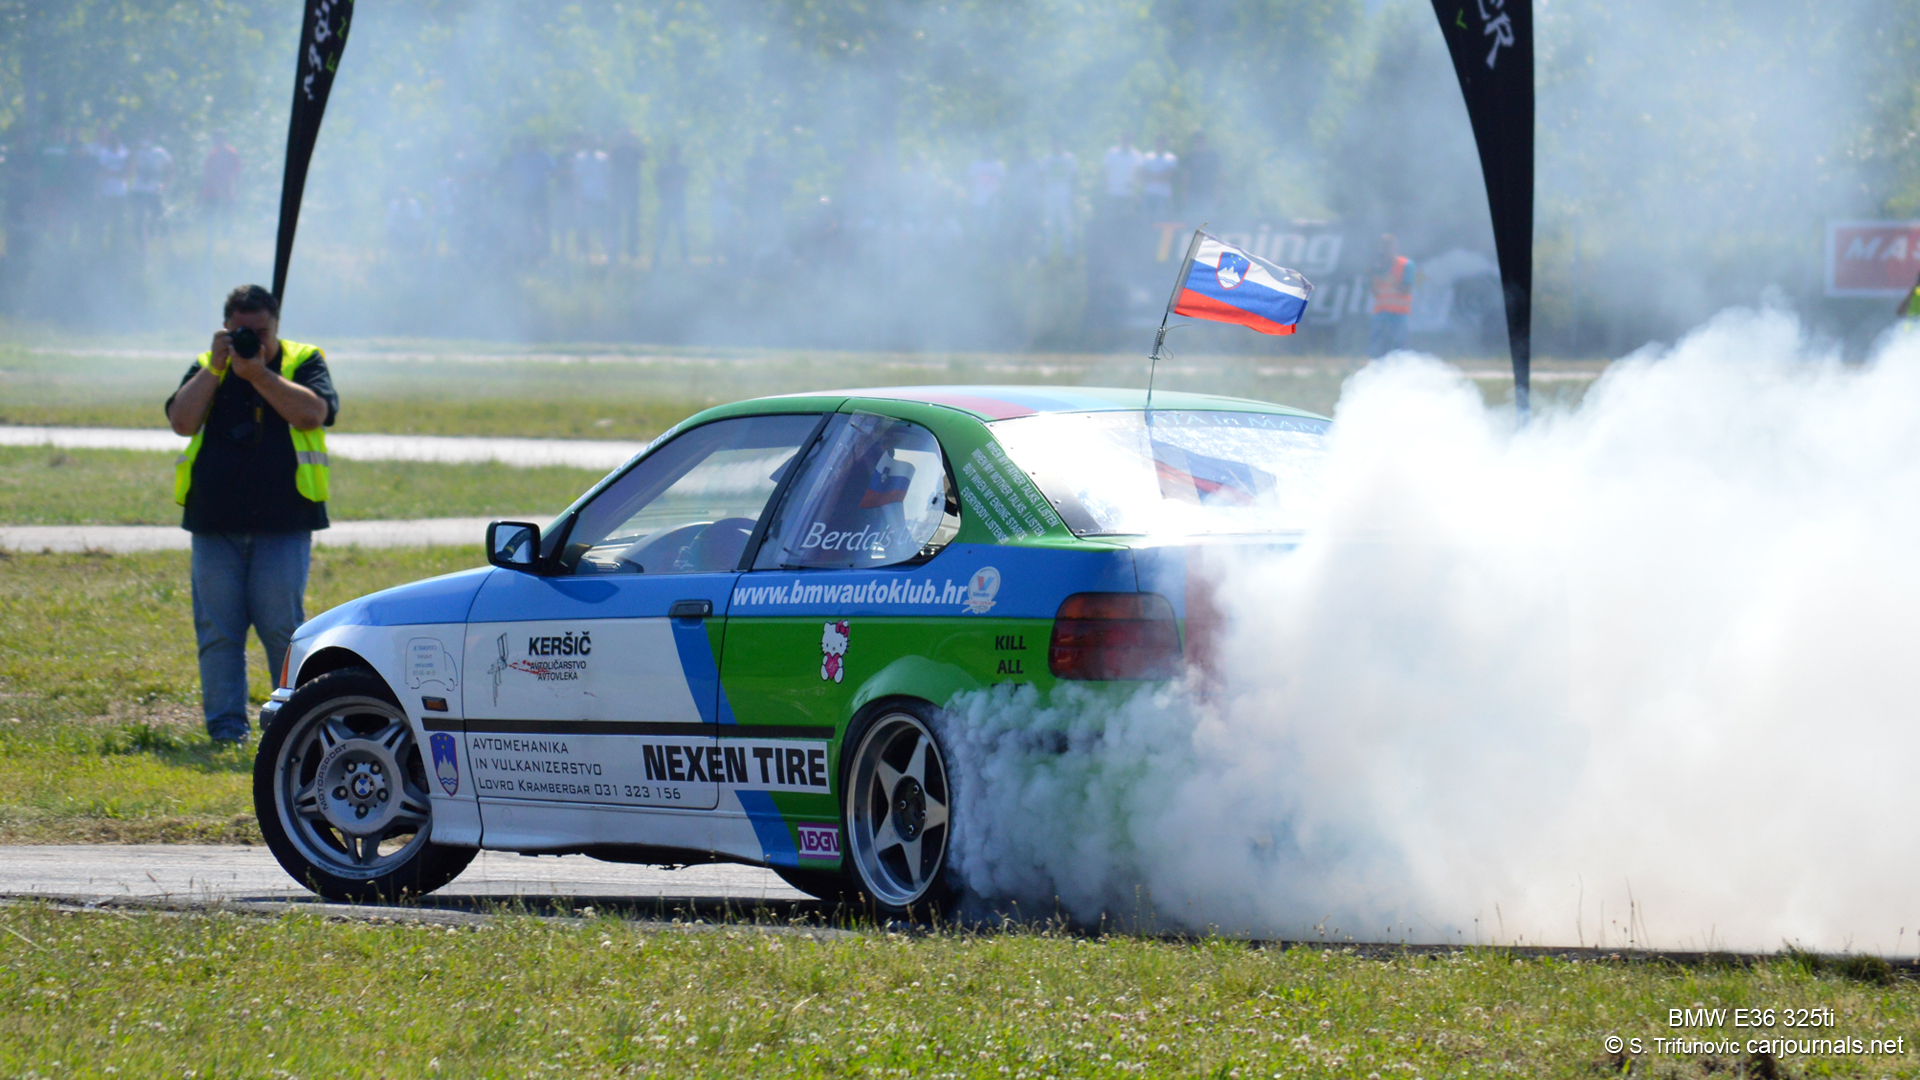 Hd Car Wallpapers Bmw E36 325ti Drift Car Journals